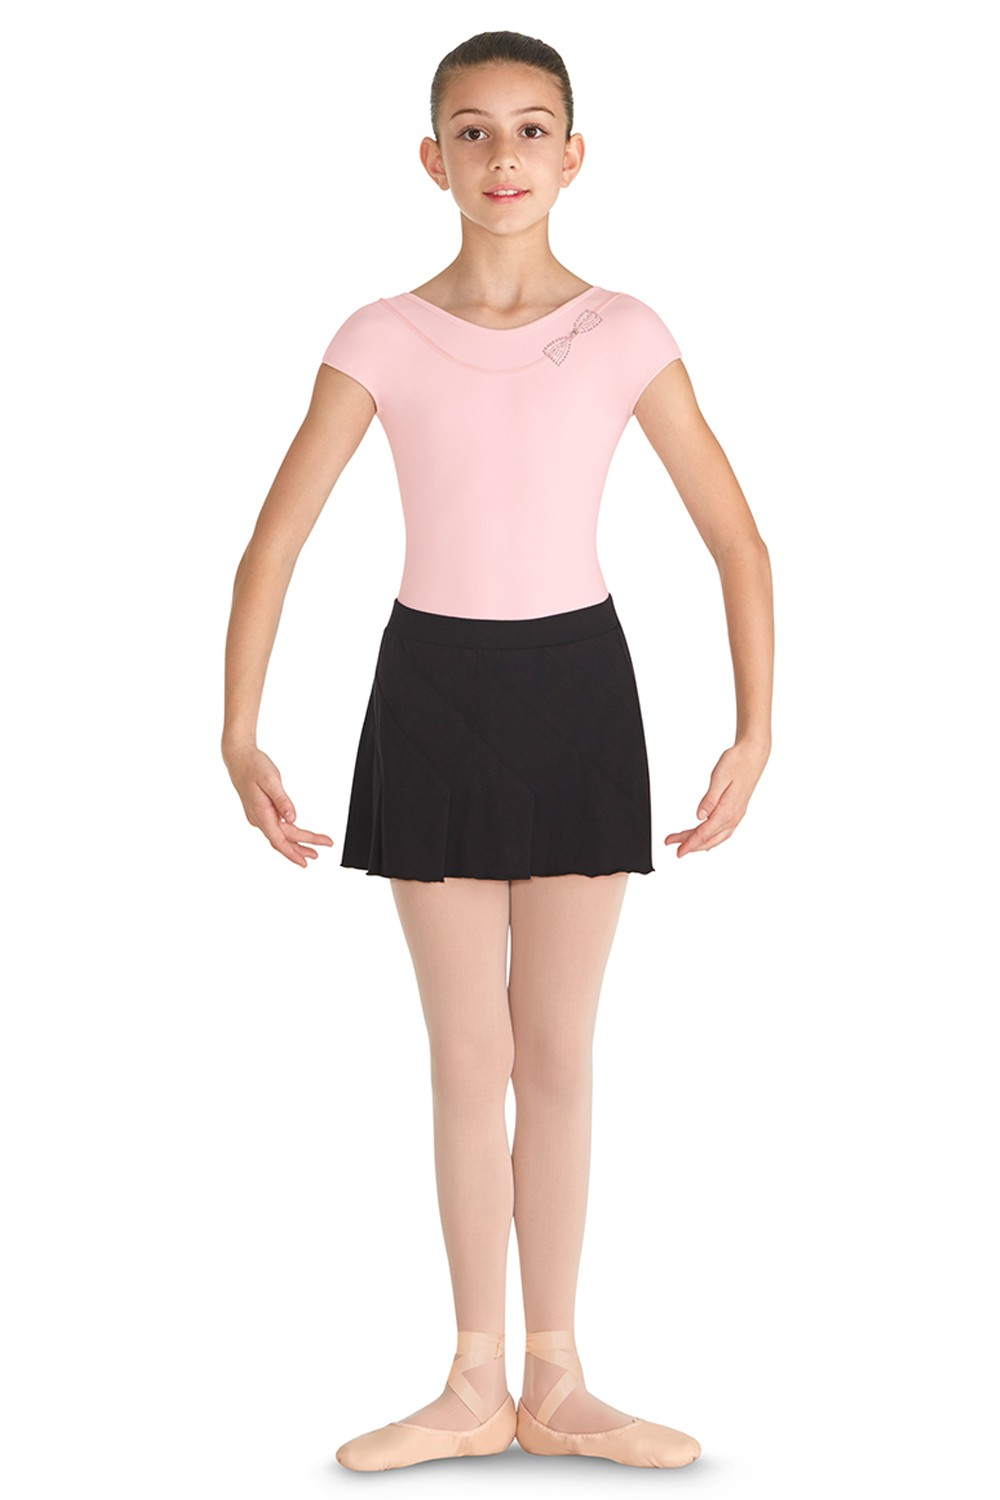 Pintuck Flip Skirt Children's Dance Skirts